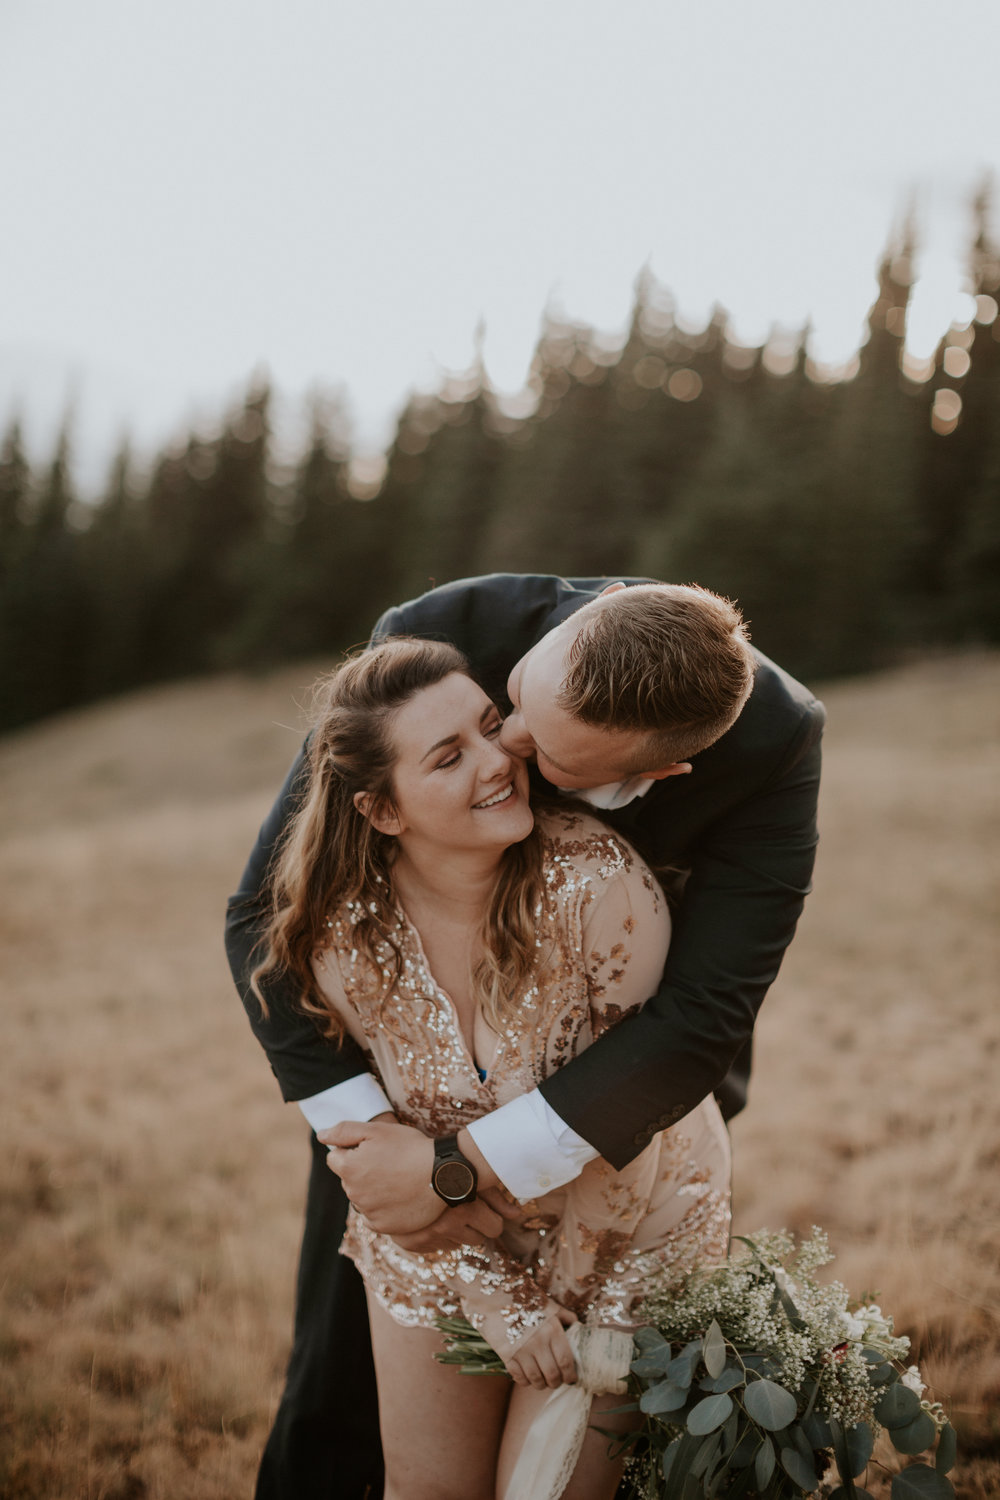 PNW-Hurricane-Ridge-Port-Angeles-Washington-elopement-photographer-kayla-dawn-photography-kayladawnphoto-wedding-anniversary-photoshoot-olympic-peninsula-285.jpg